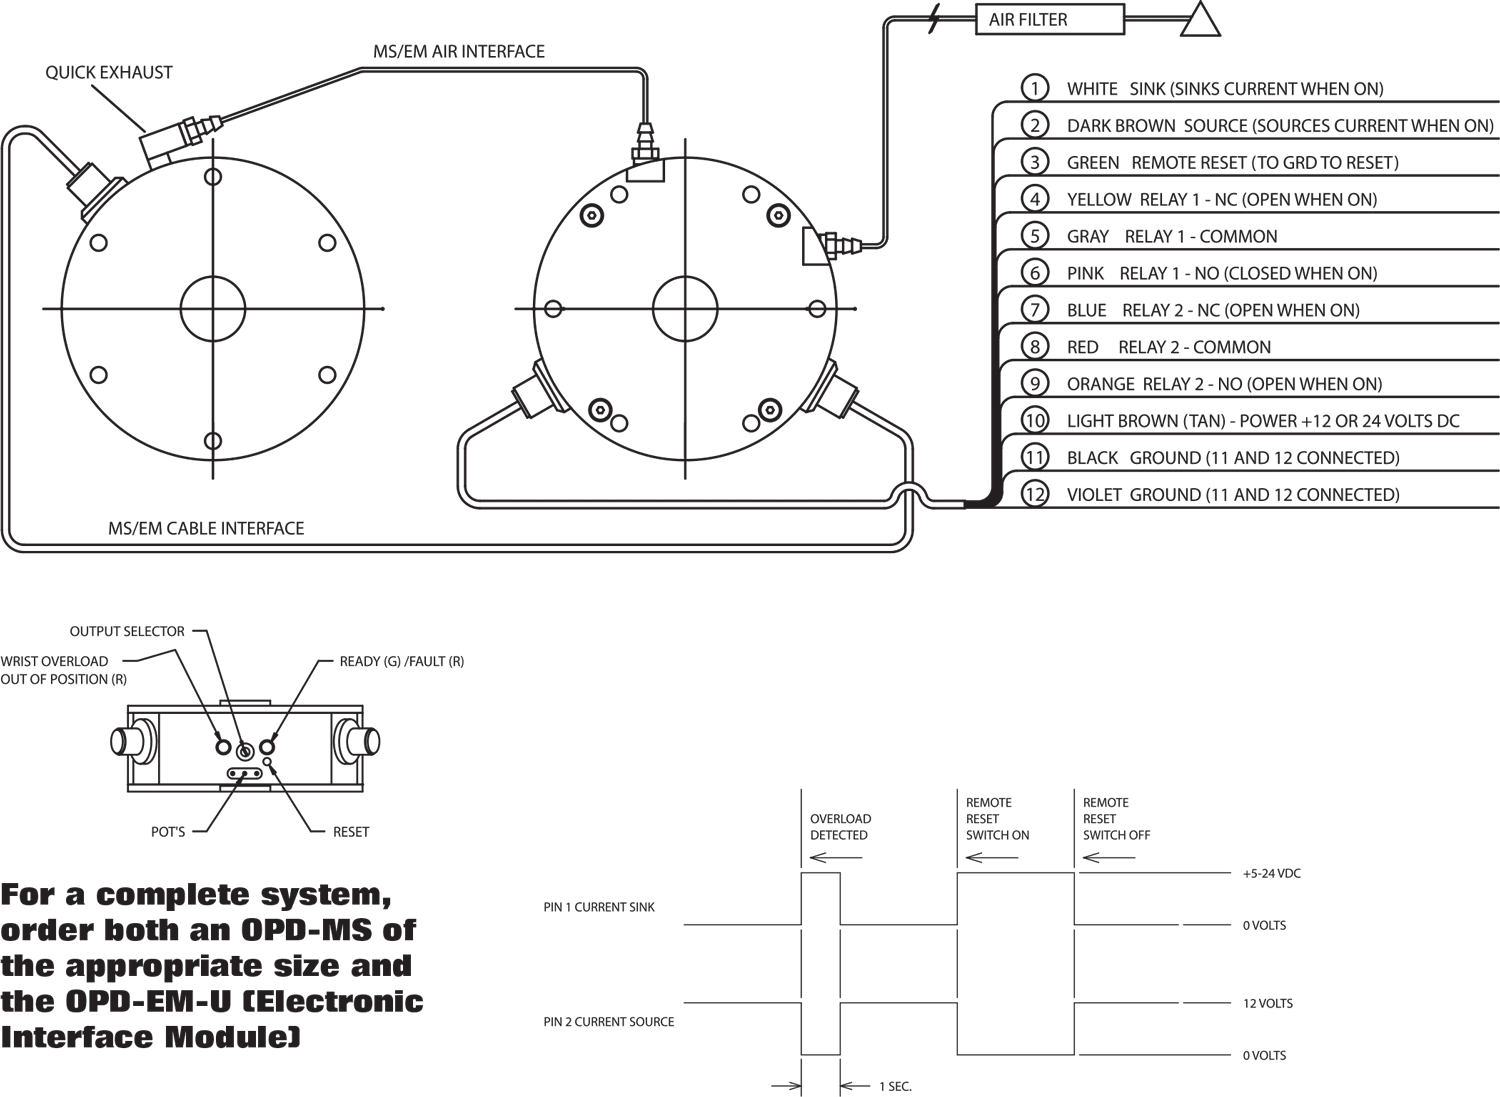 ready remote wiring diagram expedition    ready       remote       wiring       diagram       diagram    stream     ready       remote       wiring       diagram       diagram    stream